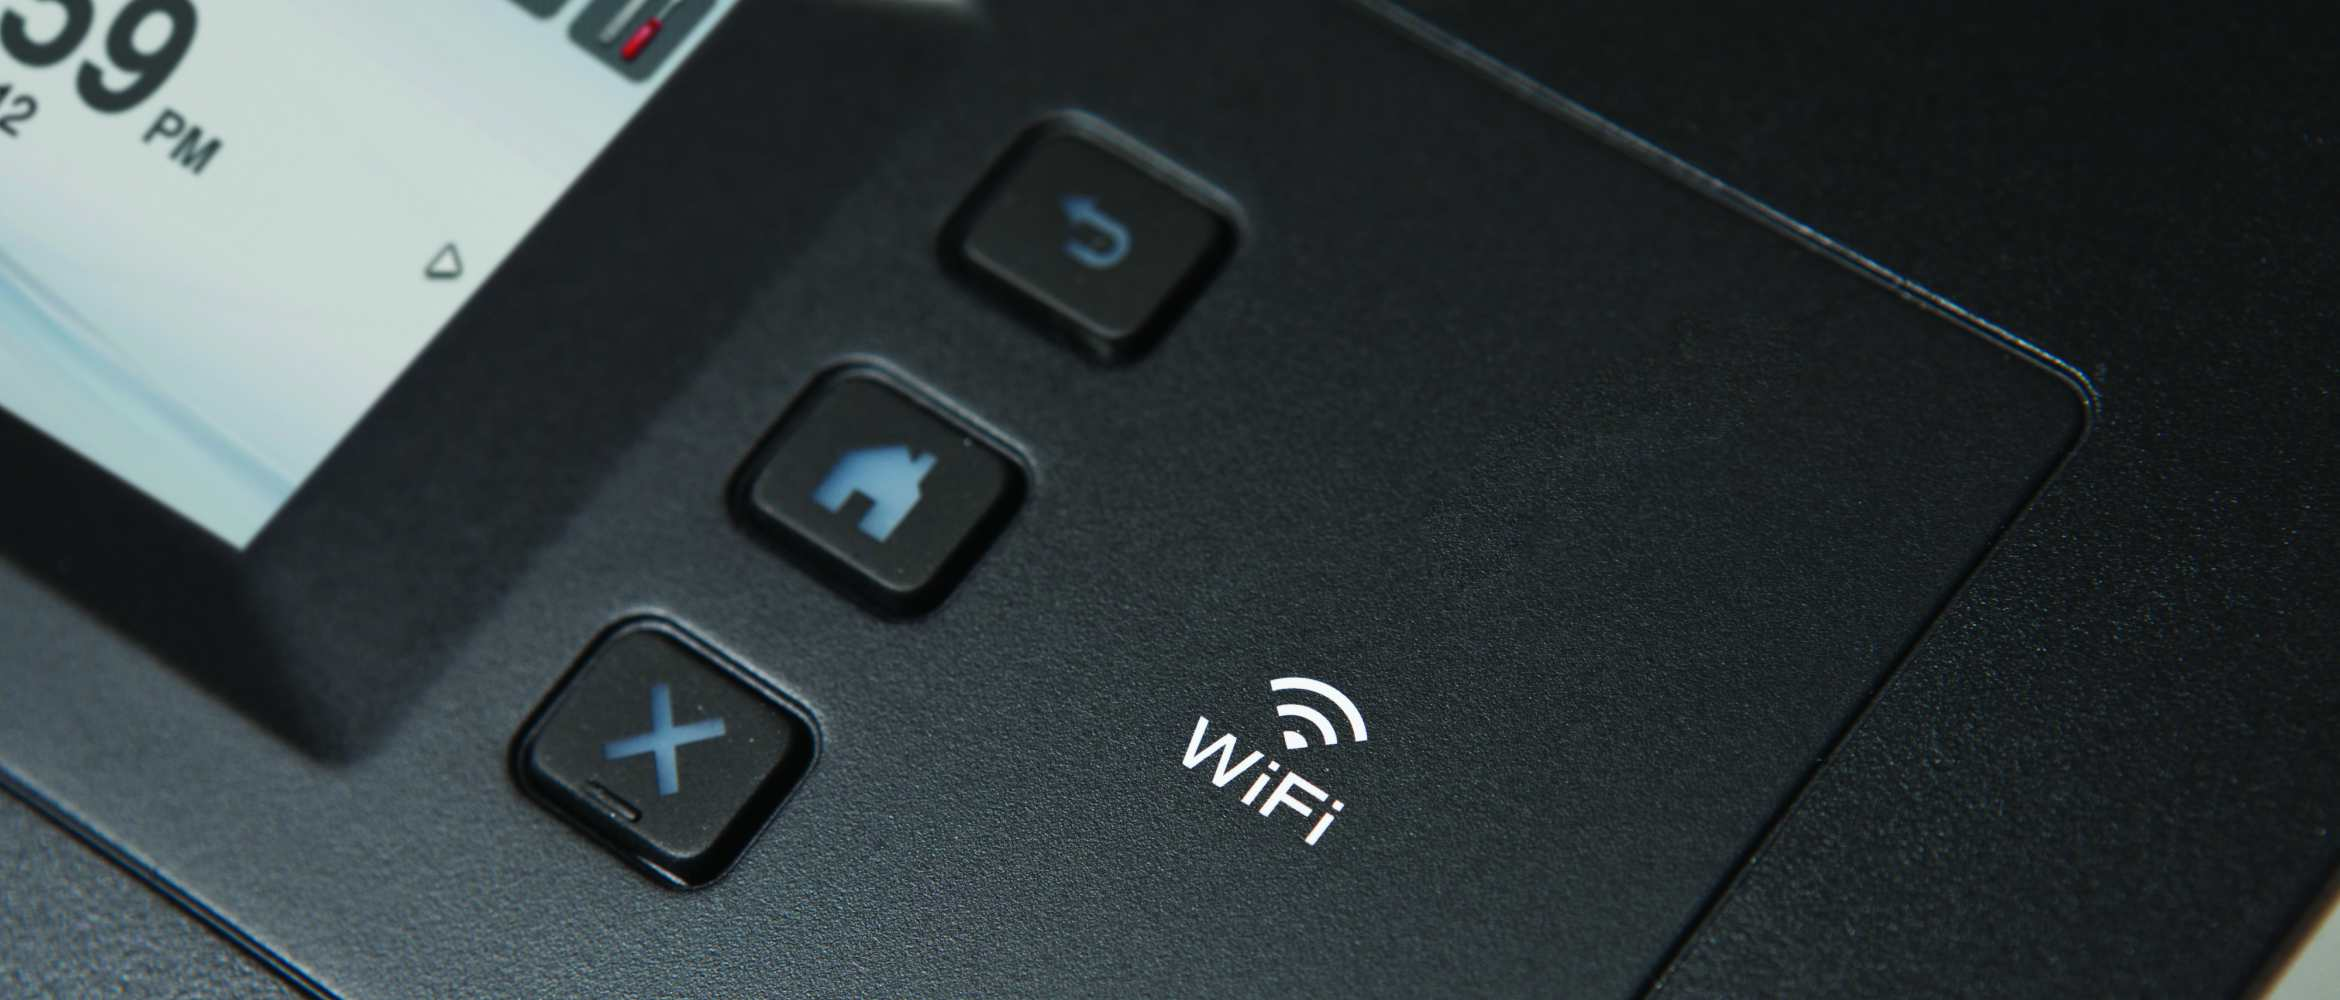 Símbolo de wifi en impresora Brother